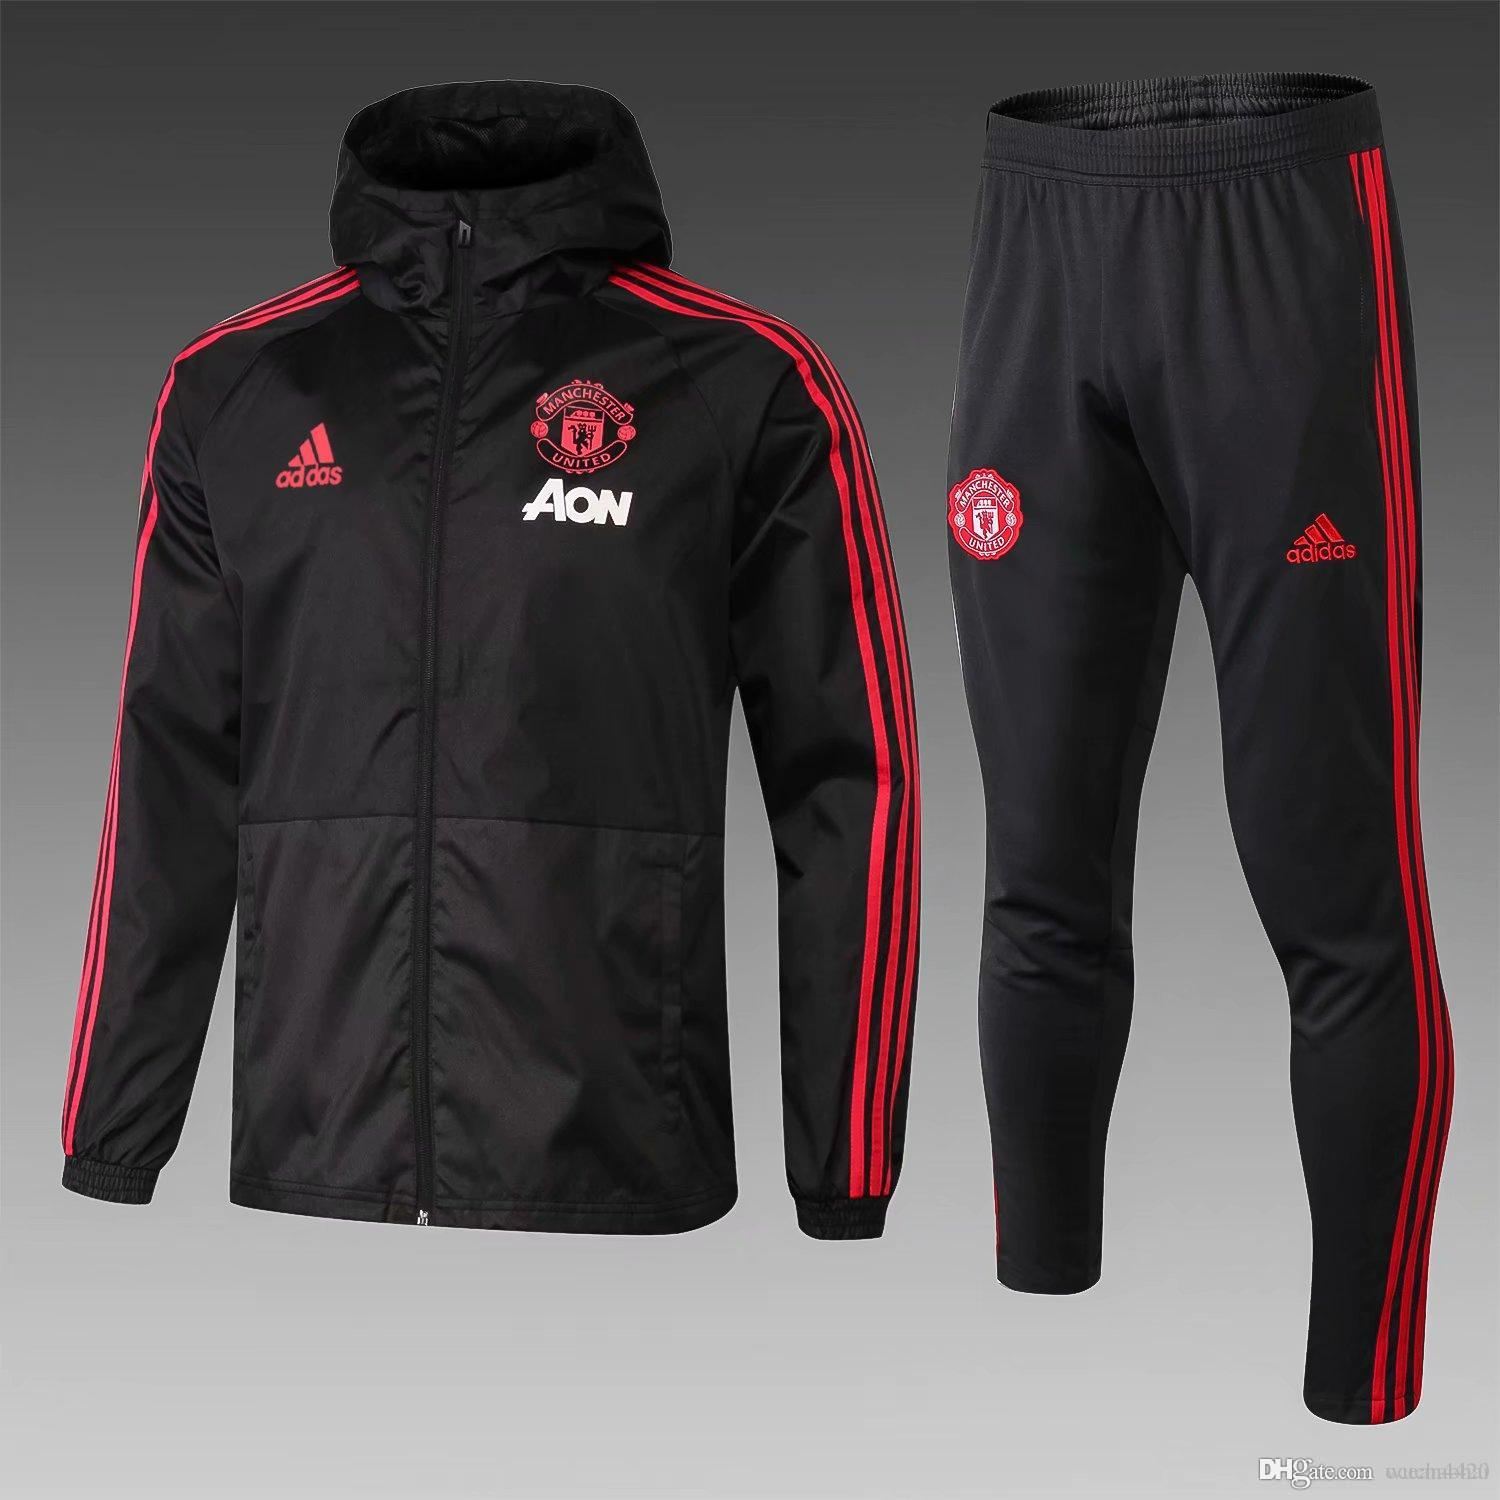 54e2e5140 Manchester United Shirts For Sale In South Africa